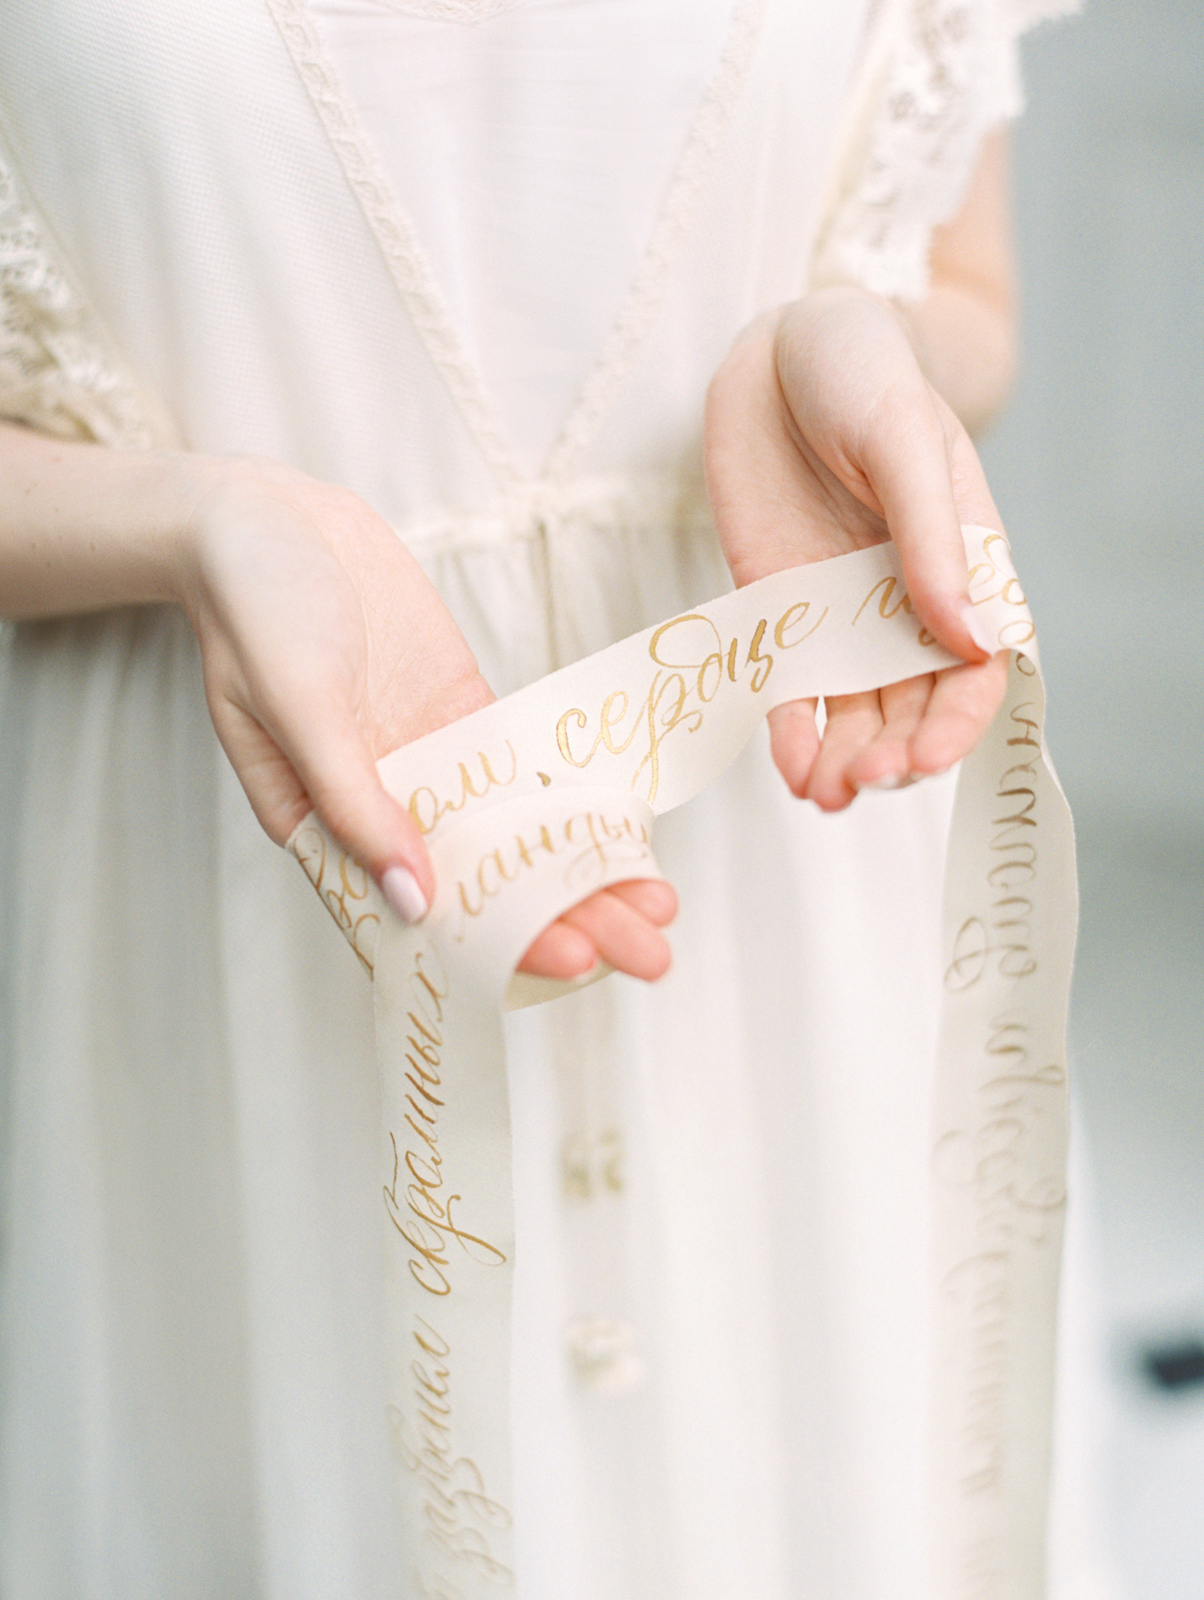 silk ribbon with calligraphy